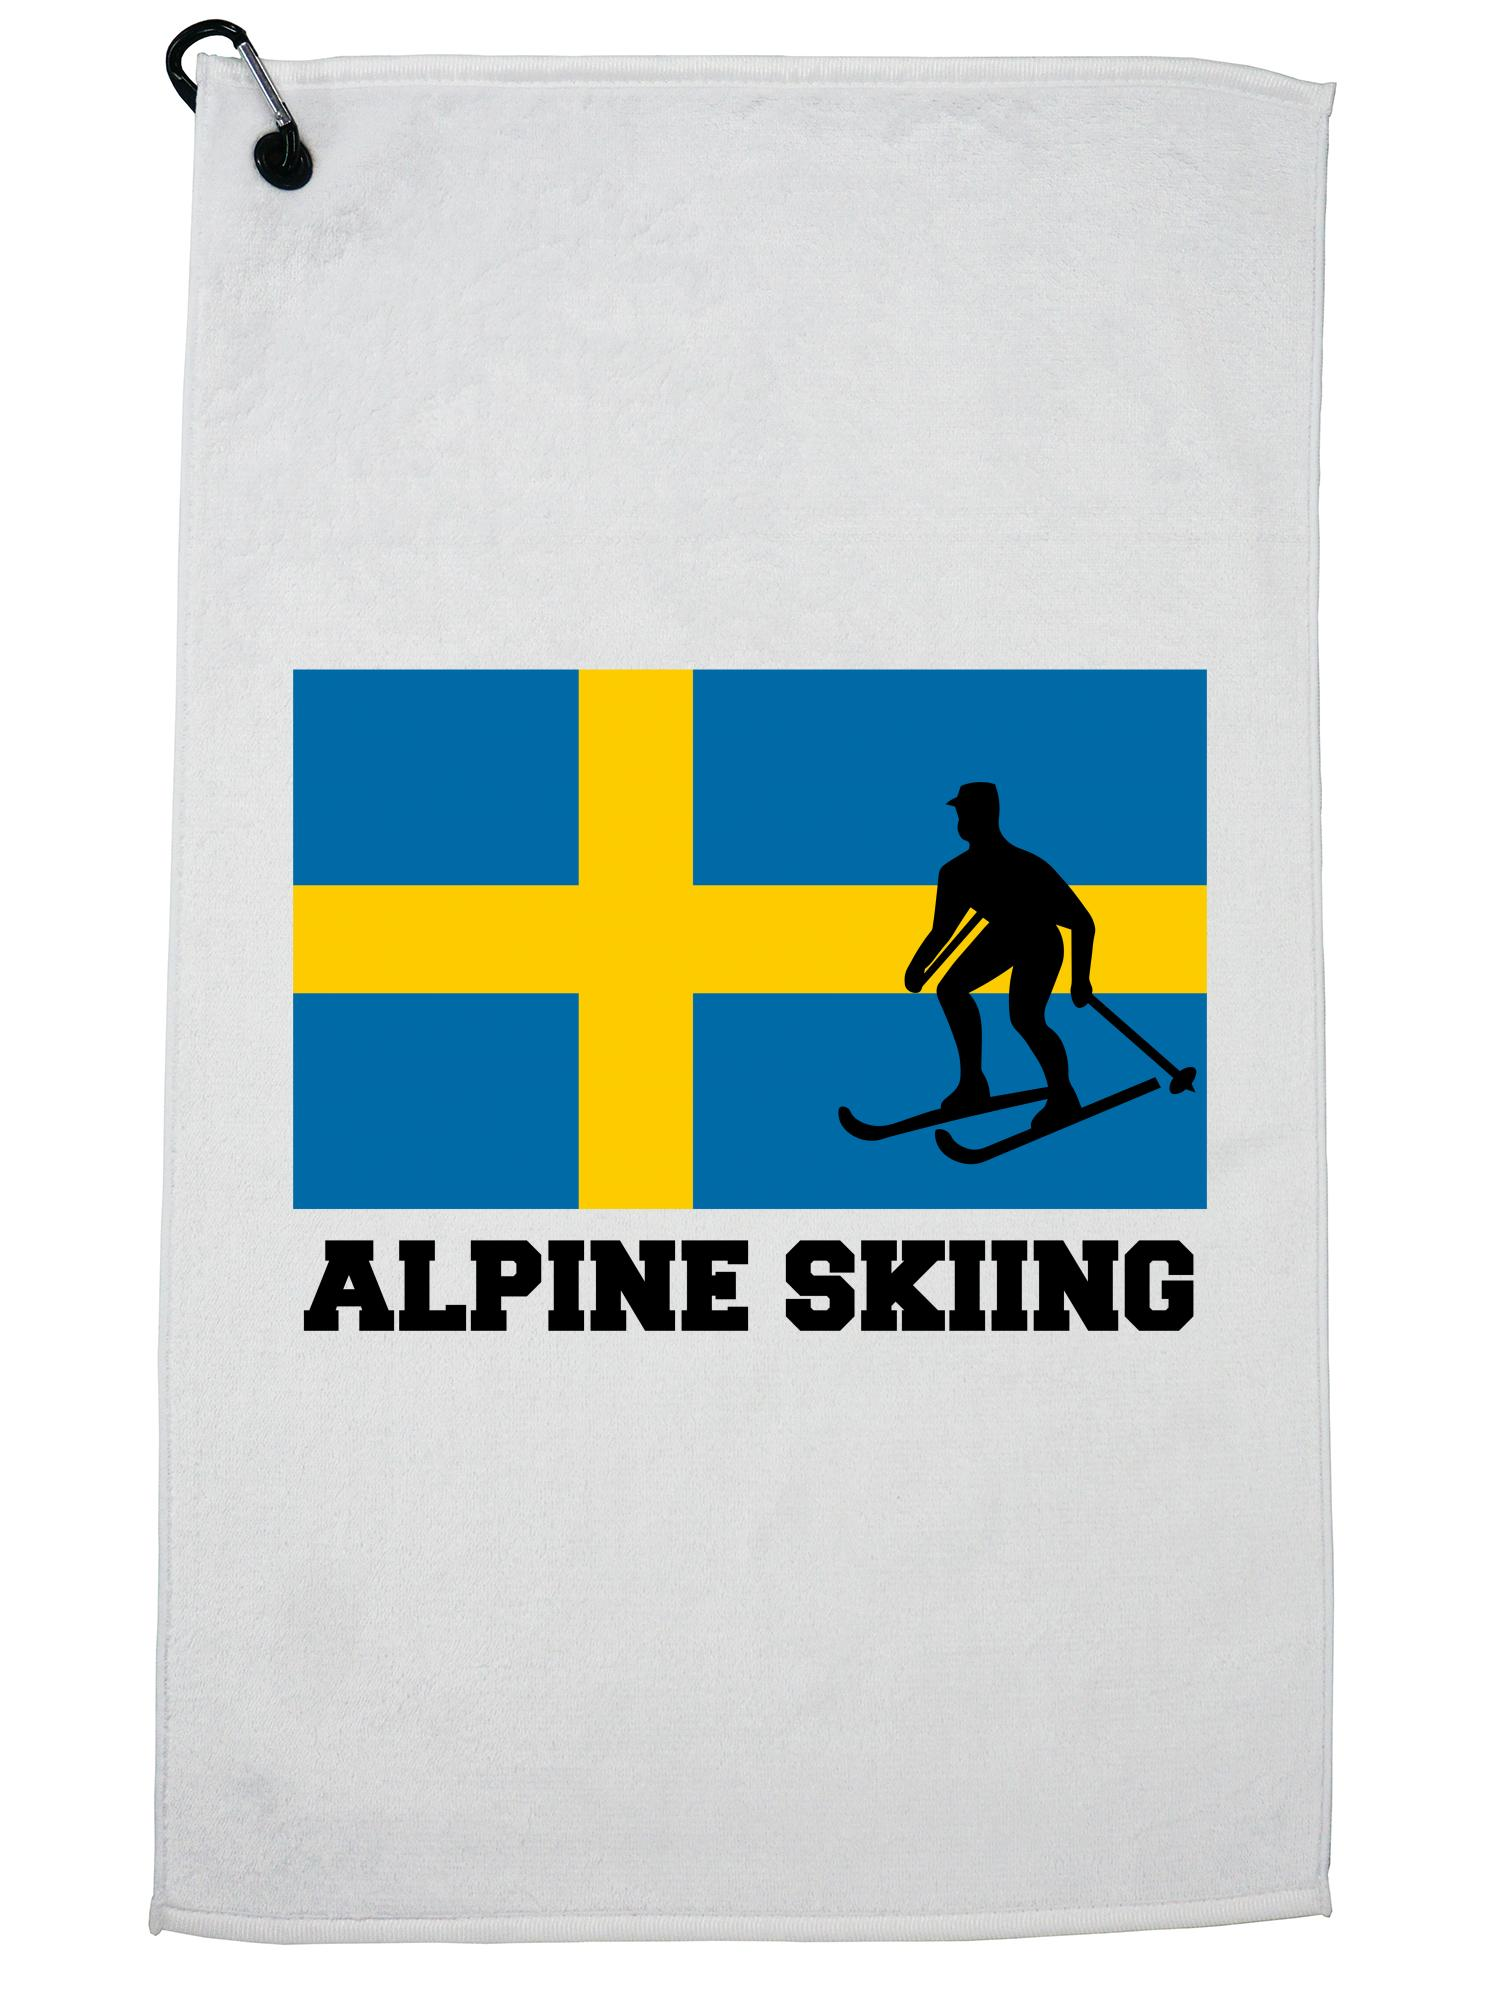 Sweden Olympic Alpine Skiing Flag Silhouette Golf Towel with Carabiner Clip by Hollywood Thread